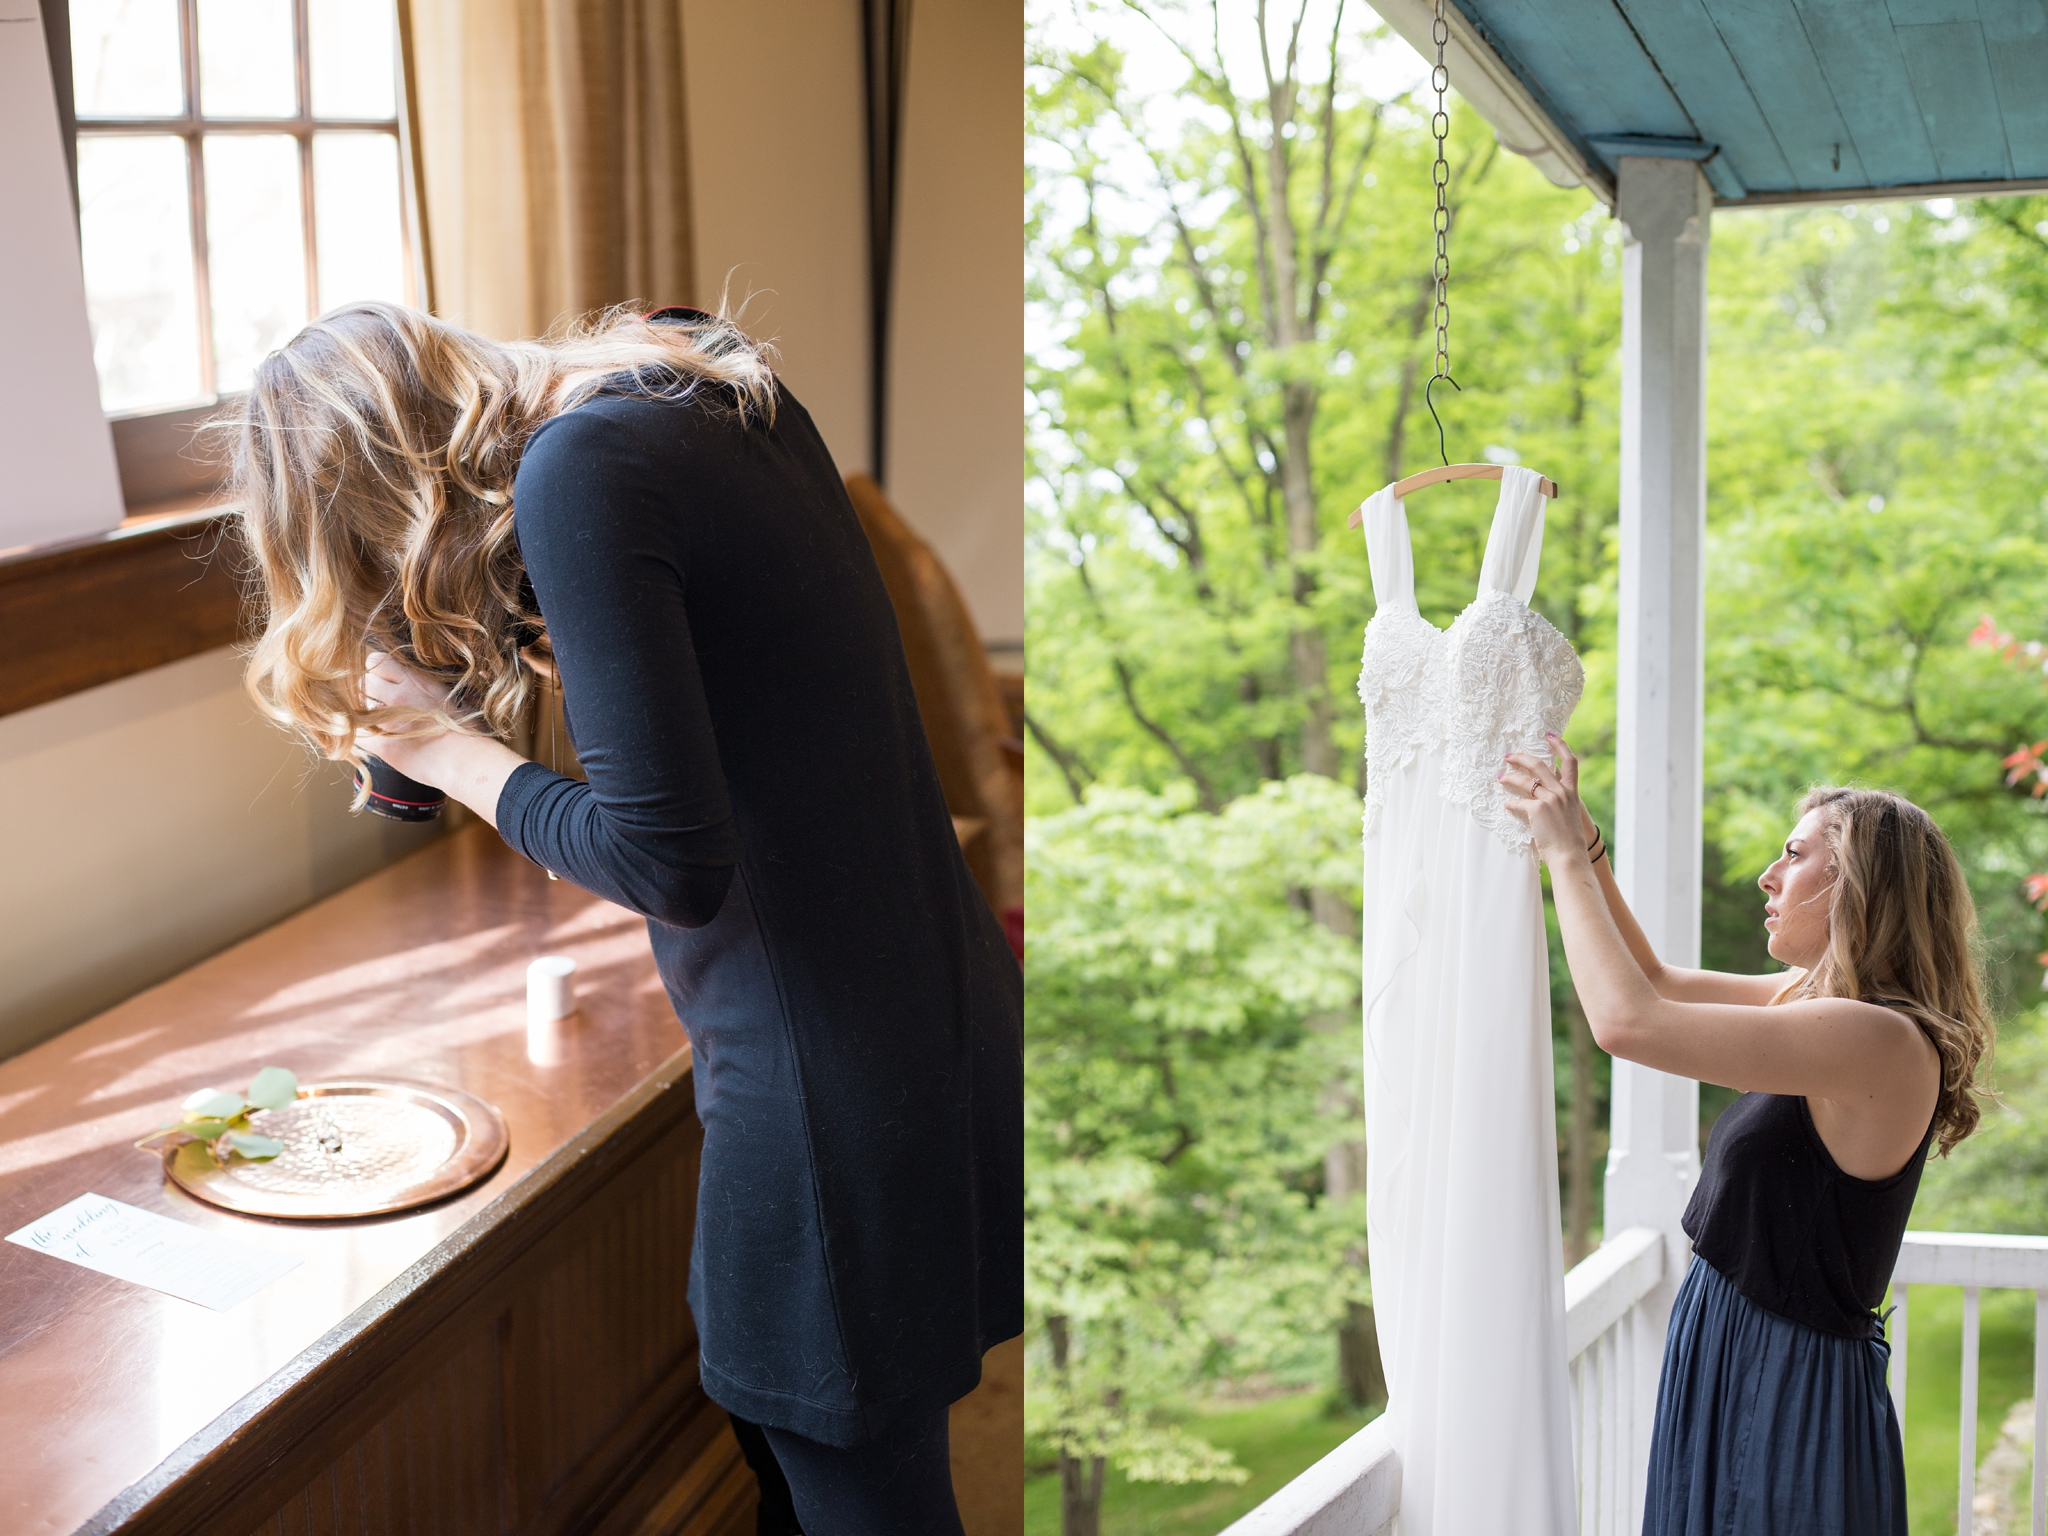 Each day starts off with some details! Don't worry though, no dresses were harmed or made dirty in the making of these photos.